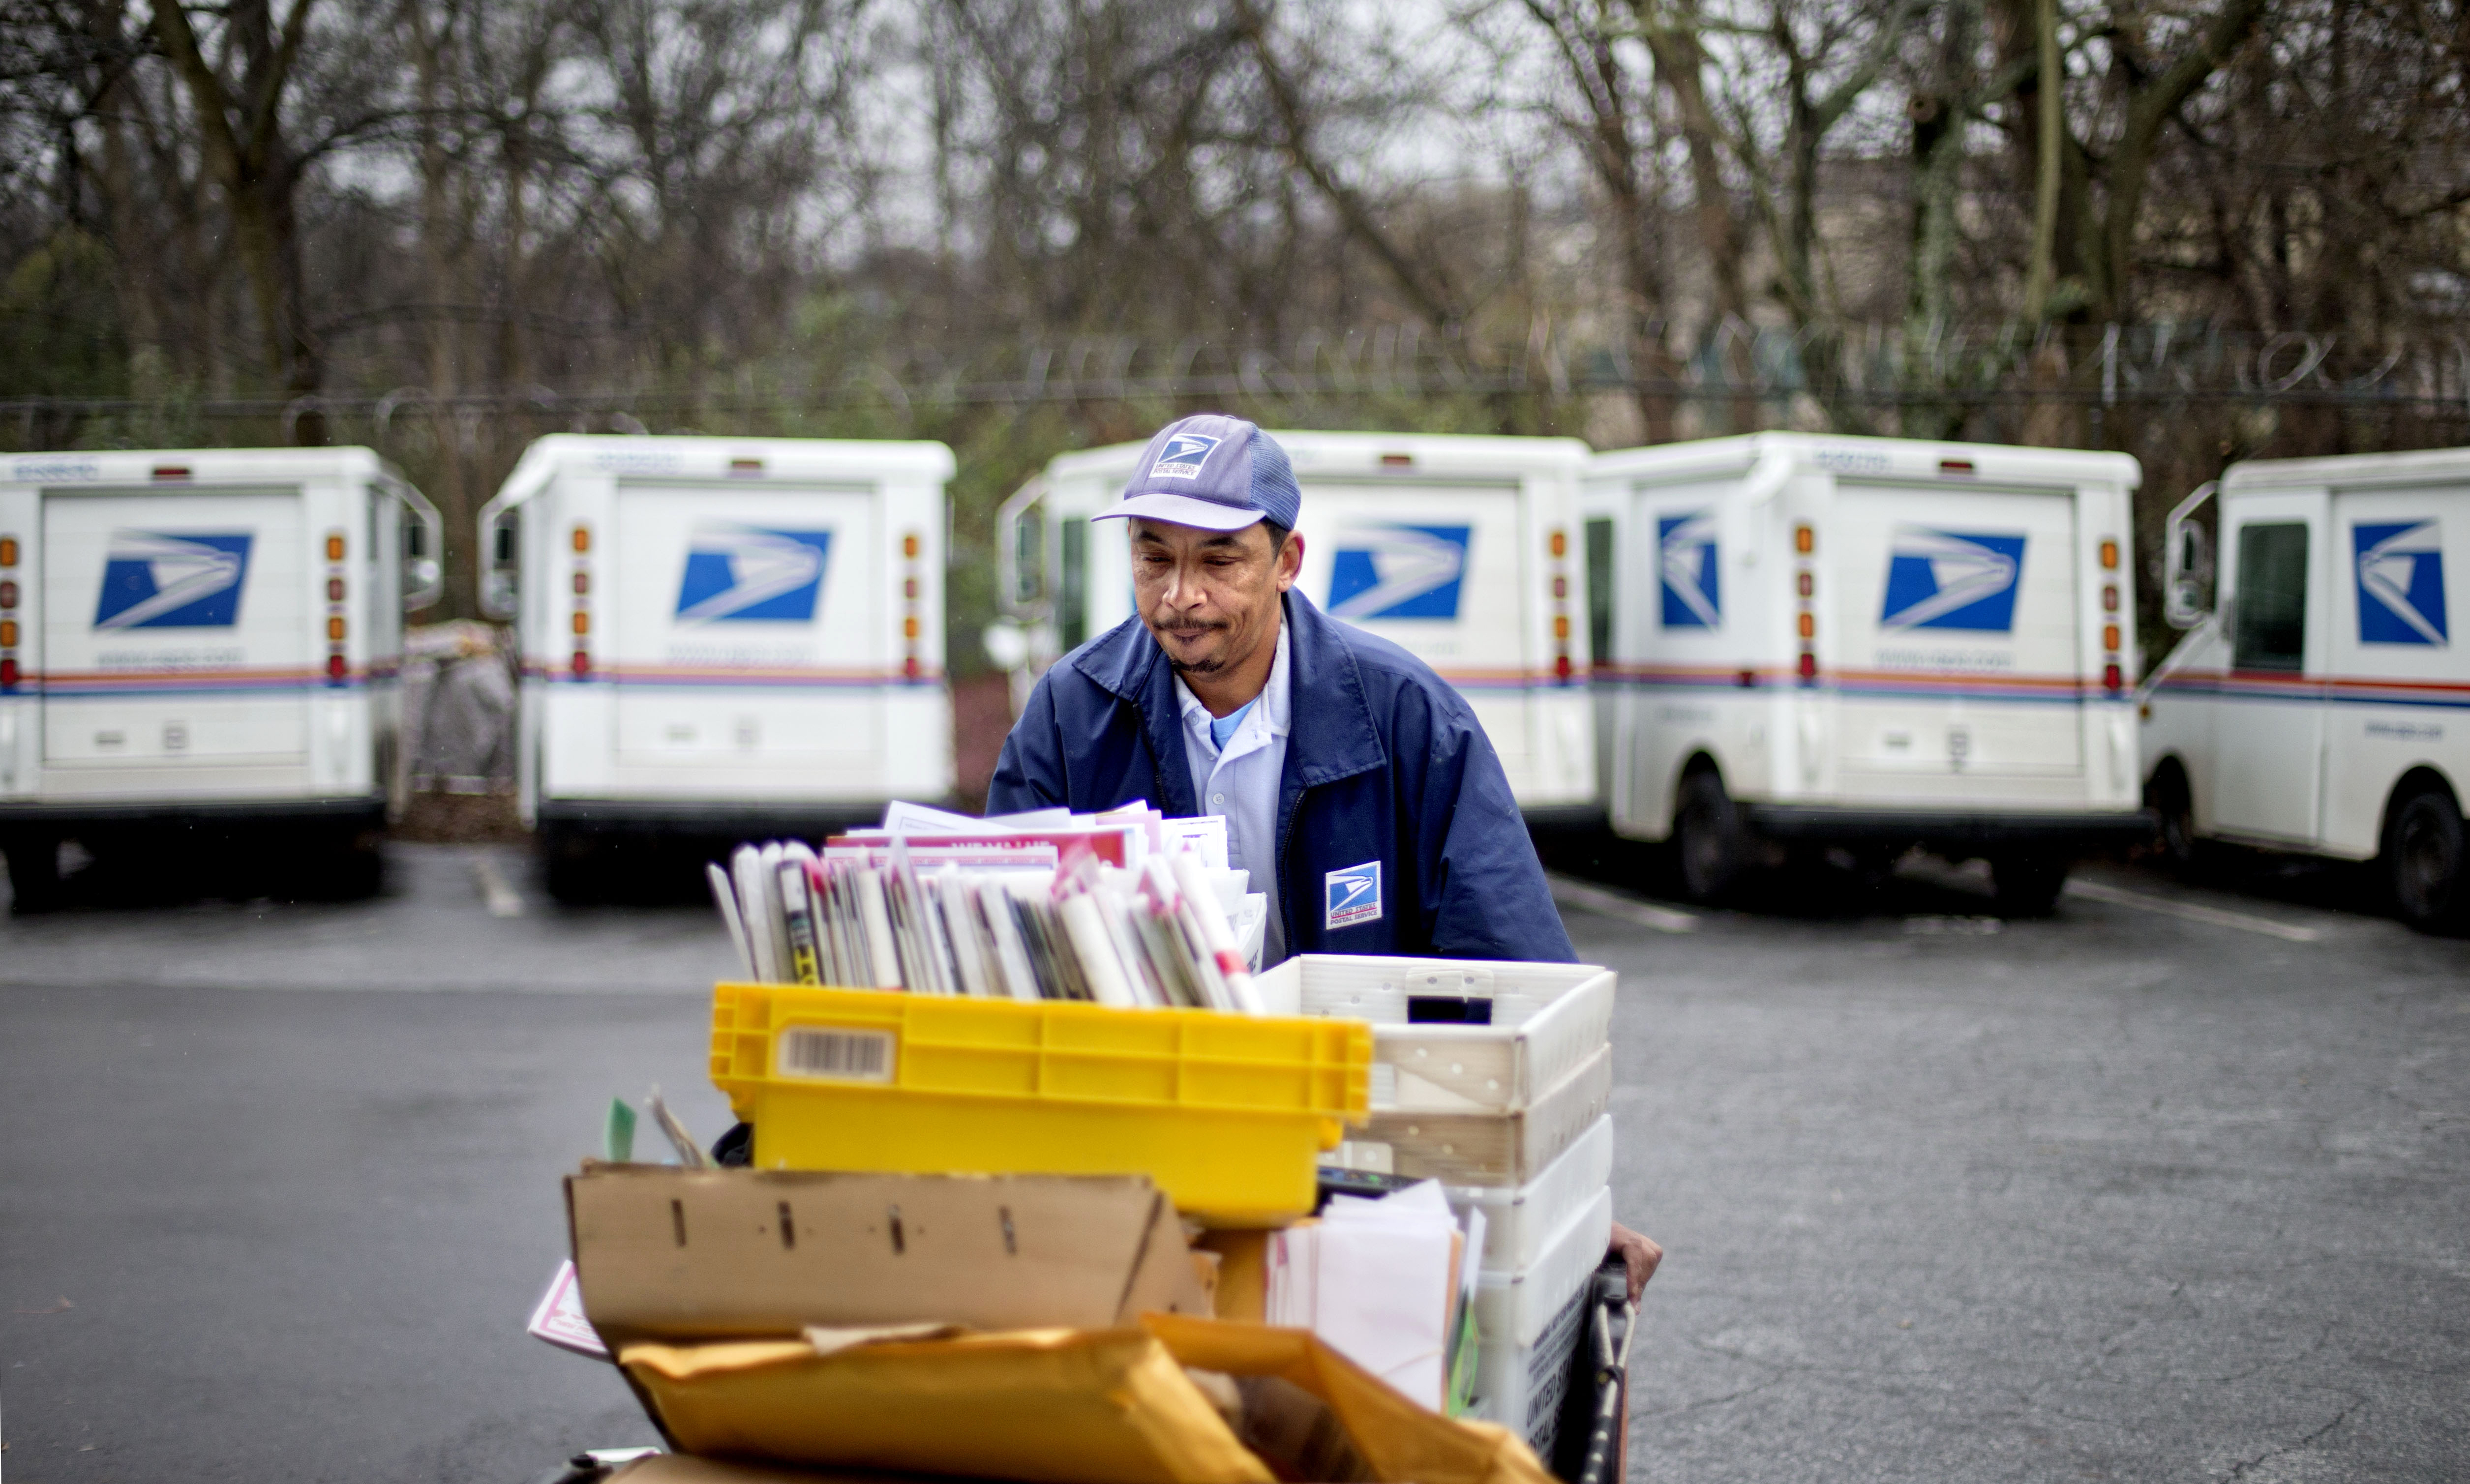 USPS employees receive latest pay raise, COLA increase under